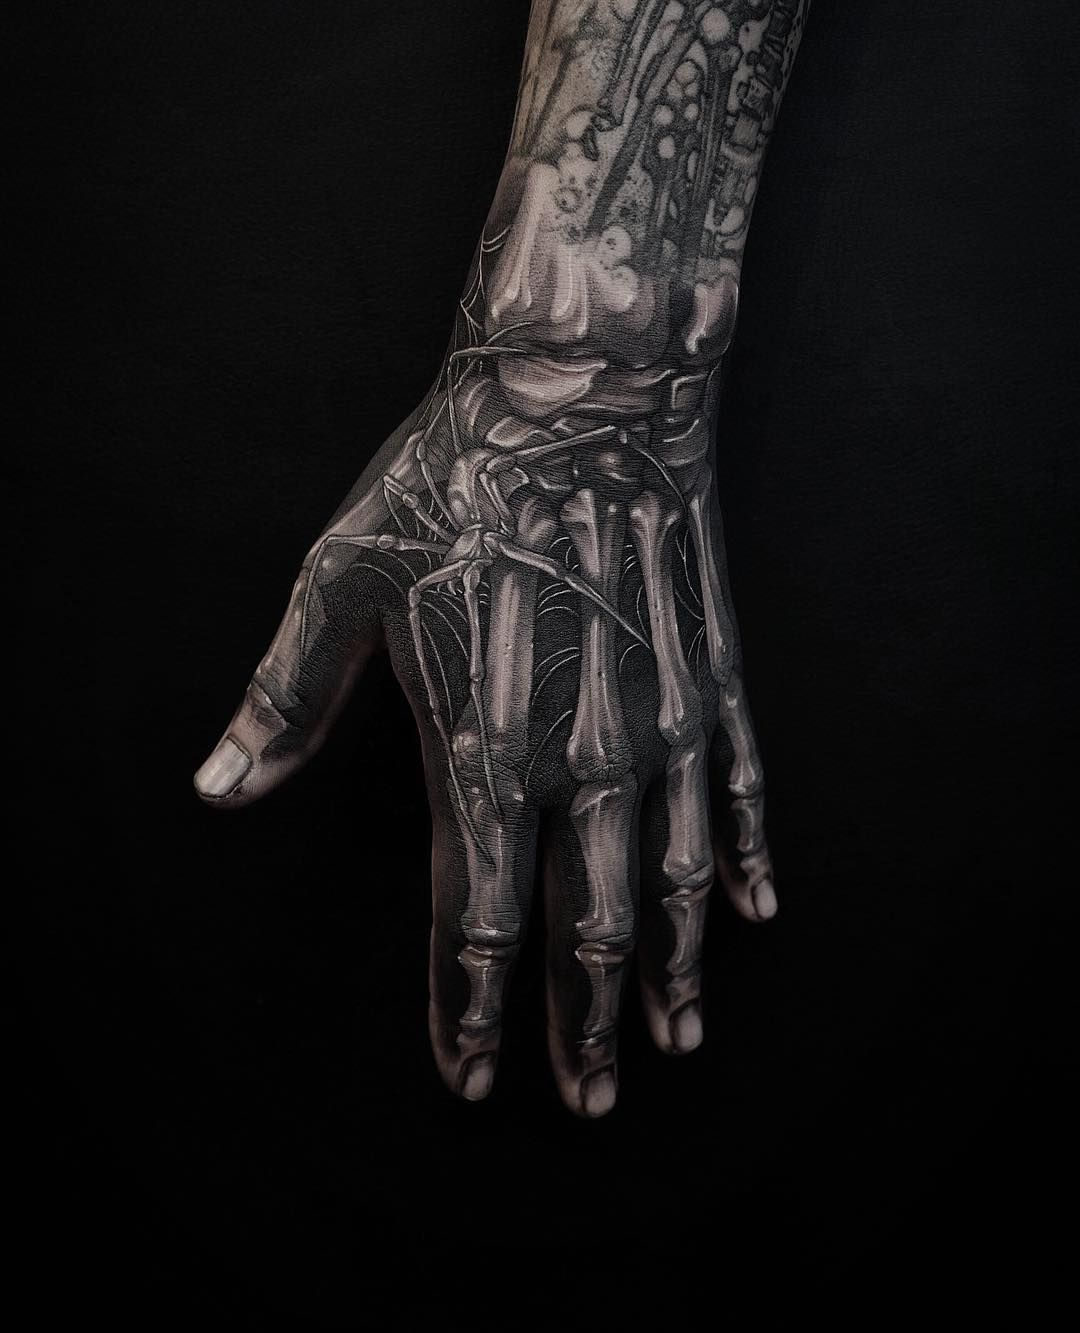 Done At Lighthouse Professional Tattoo Hand Tattoos For Guys Hand Tattoos Bone Hand Tattoo